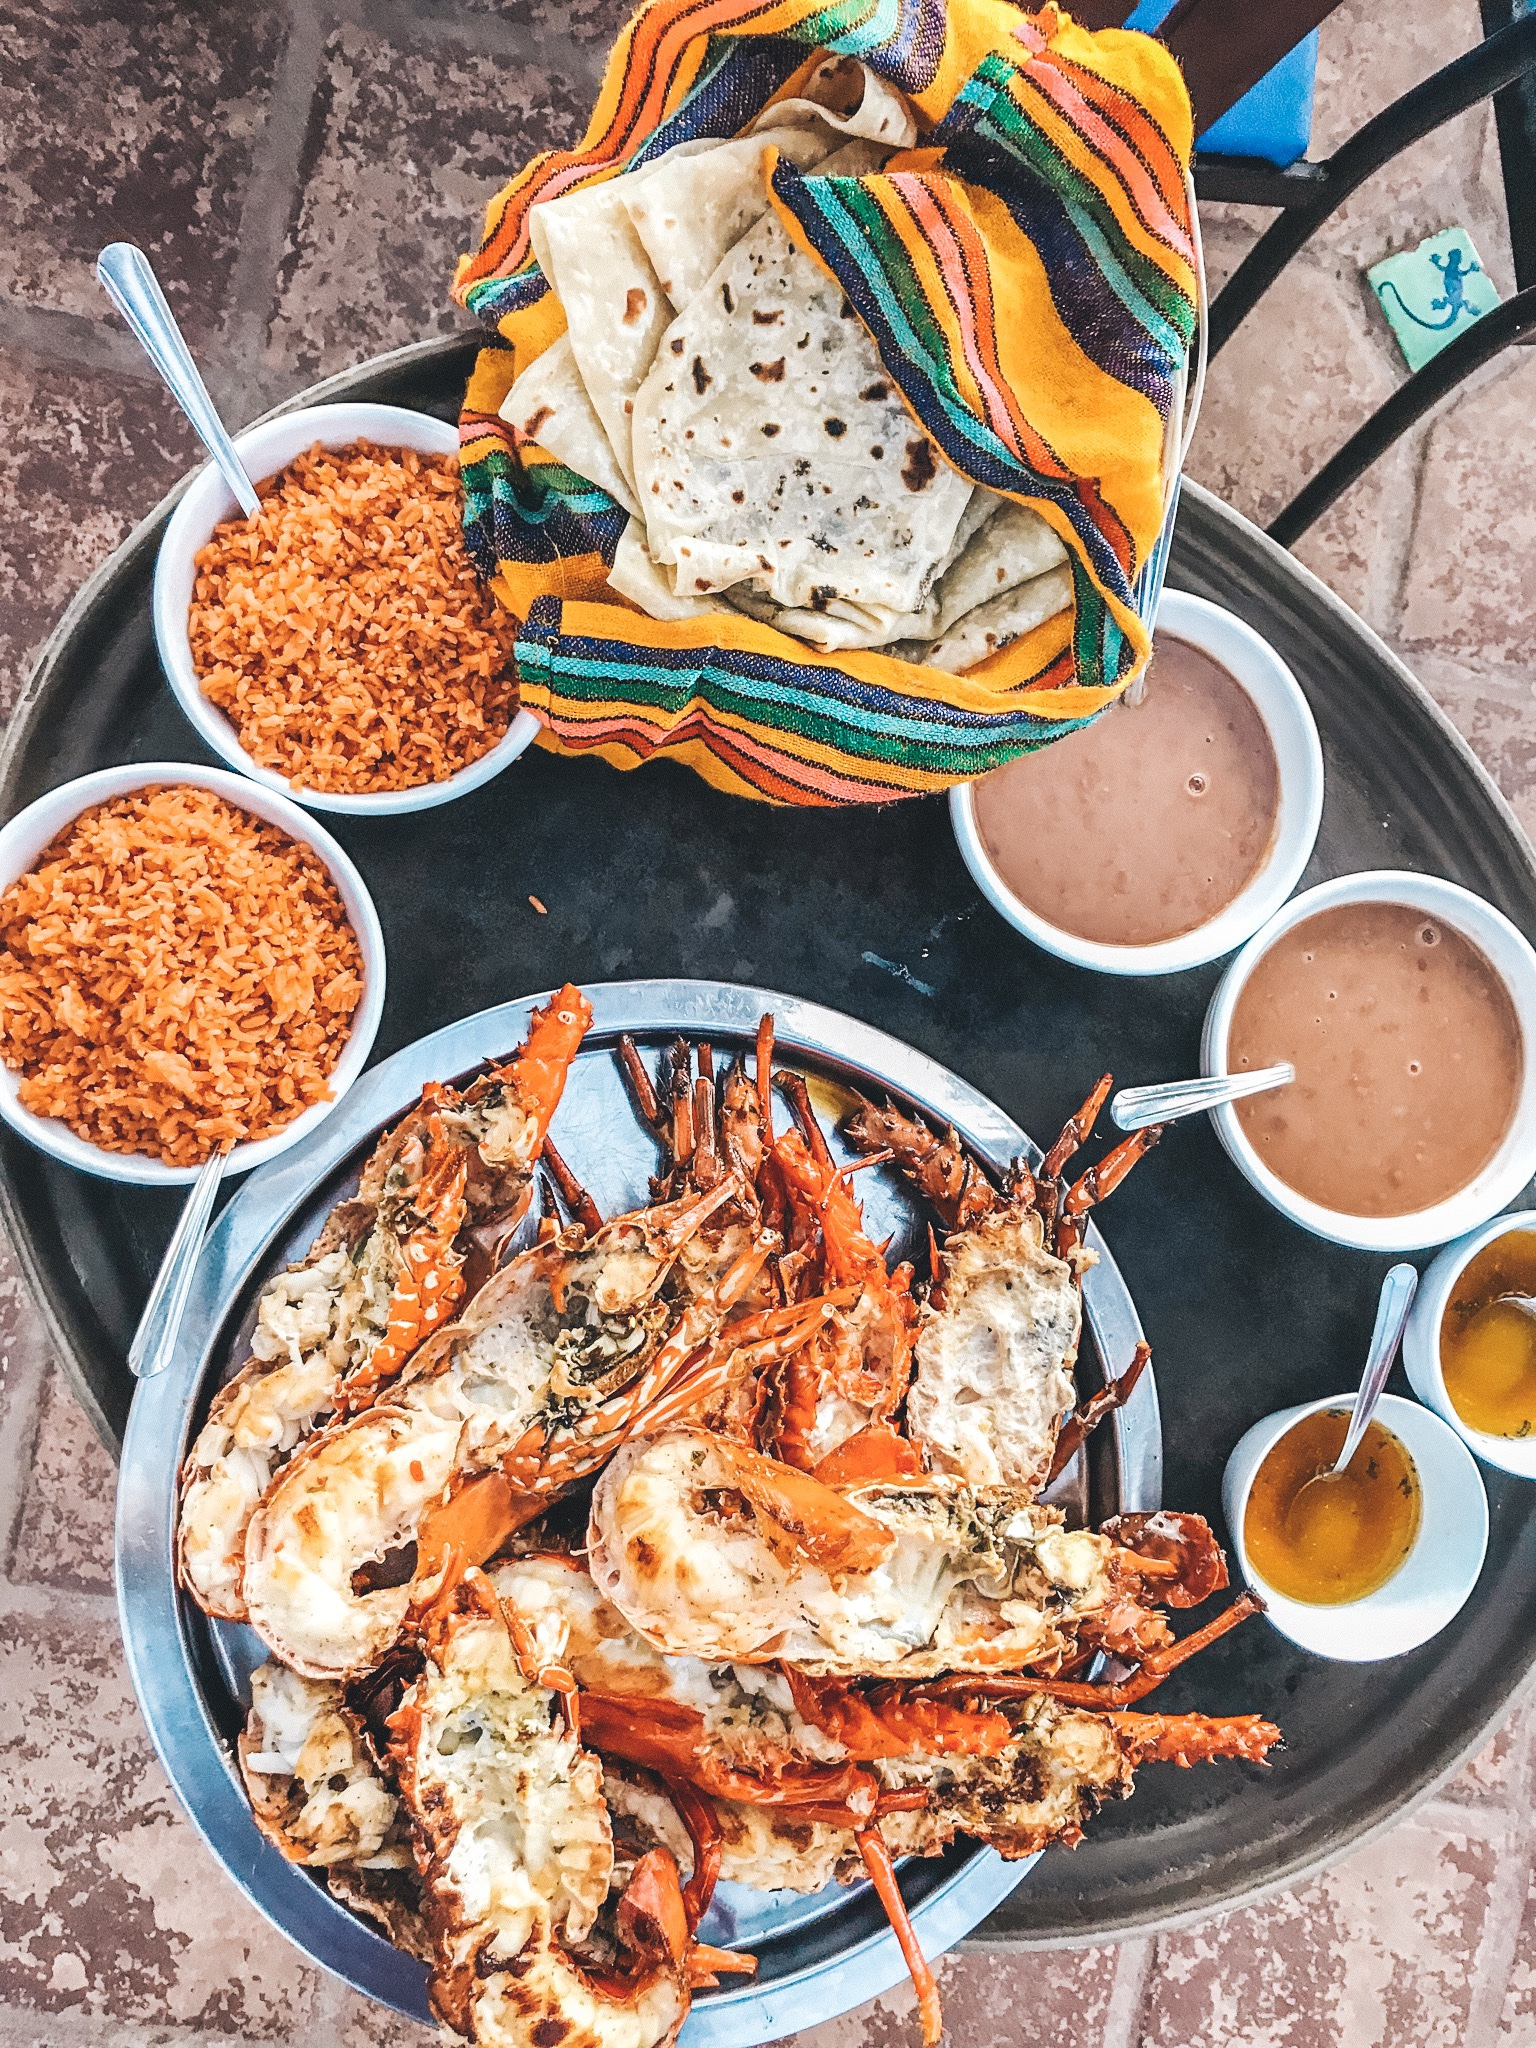 Puerto Nuevo Lobster House | Photo by Erika Beach